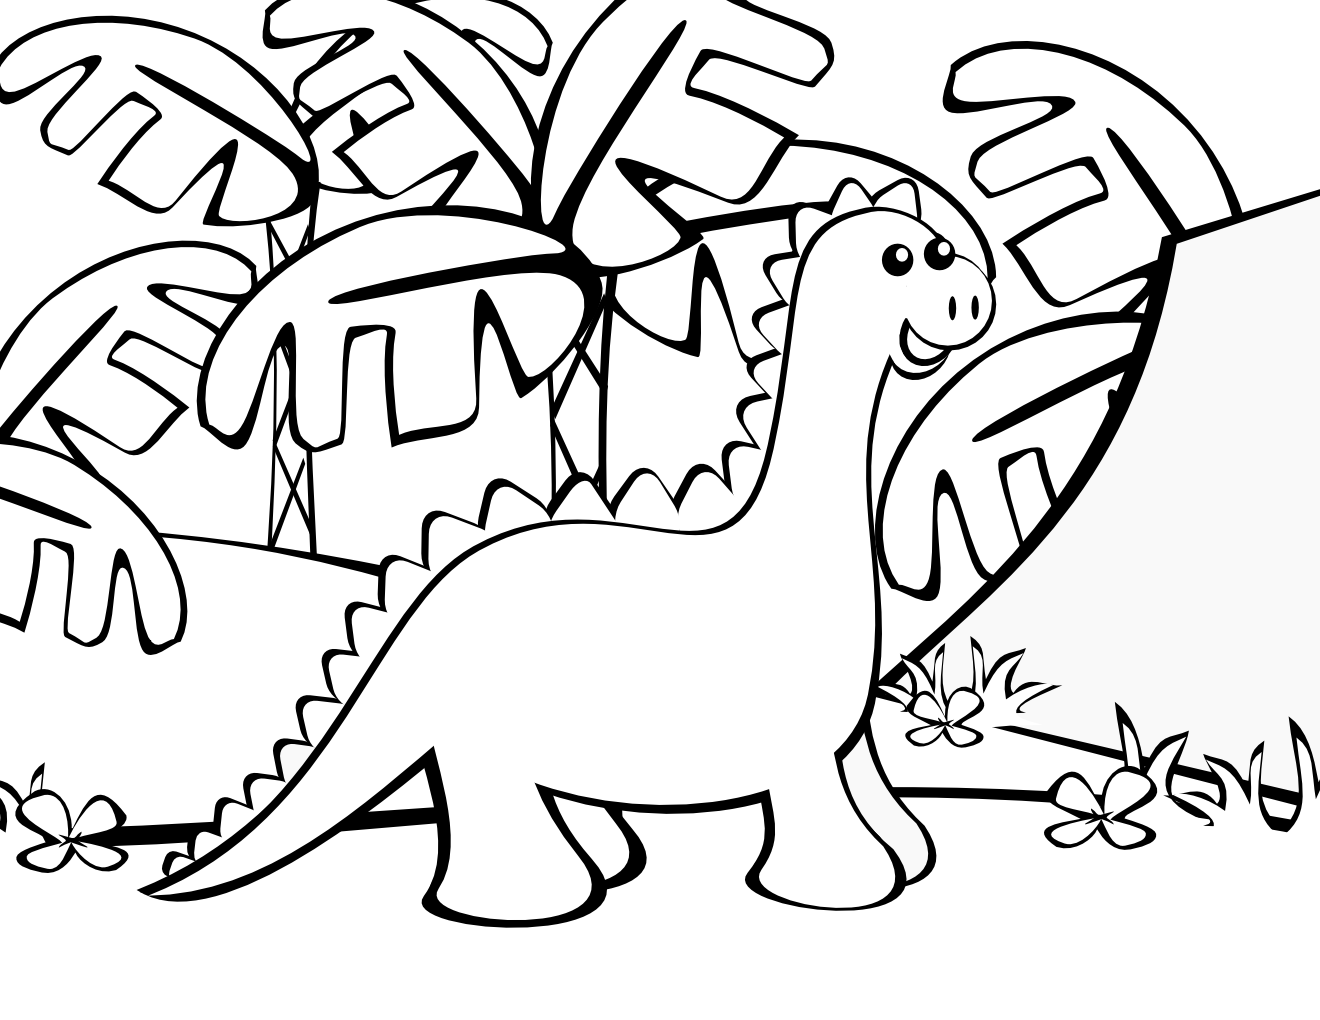 Cute Dinosaur Coloring Pages For Kids - AZ Coloring Pages